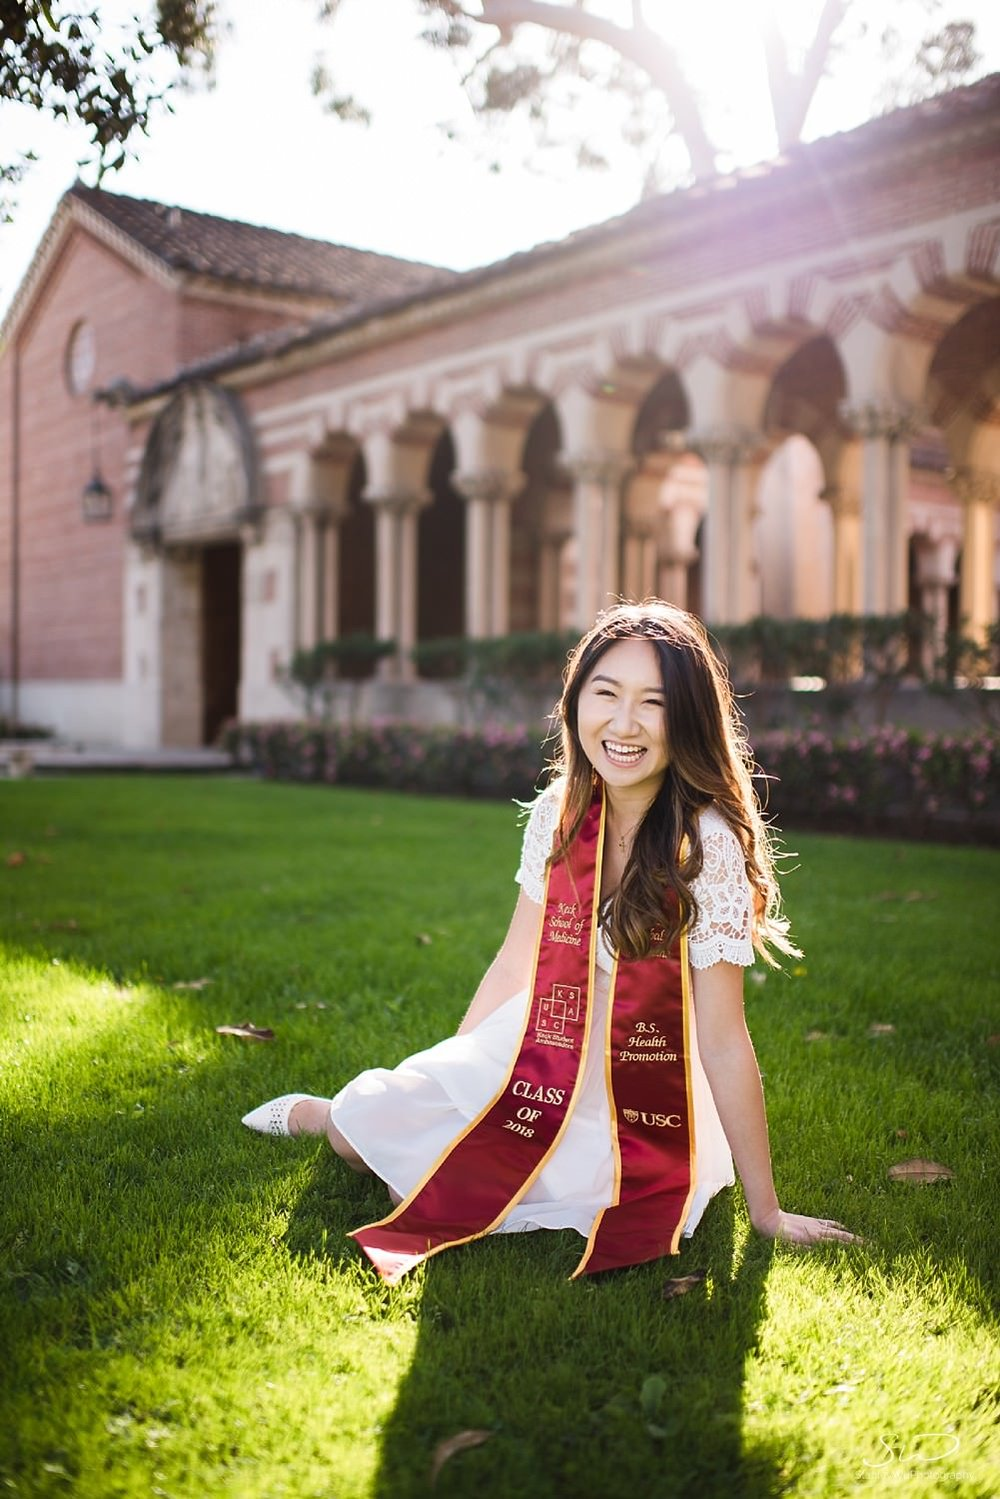 Senior sitting with graduation sash on grass at Mudd Hall at USC | Los Angeles Orange County Senior Portrait & Wedding Photographer